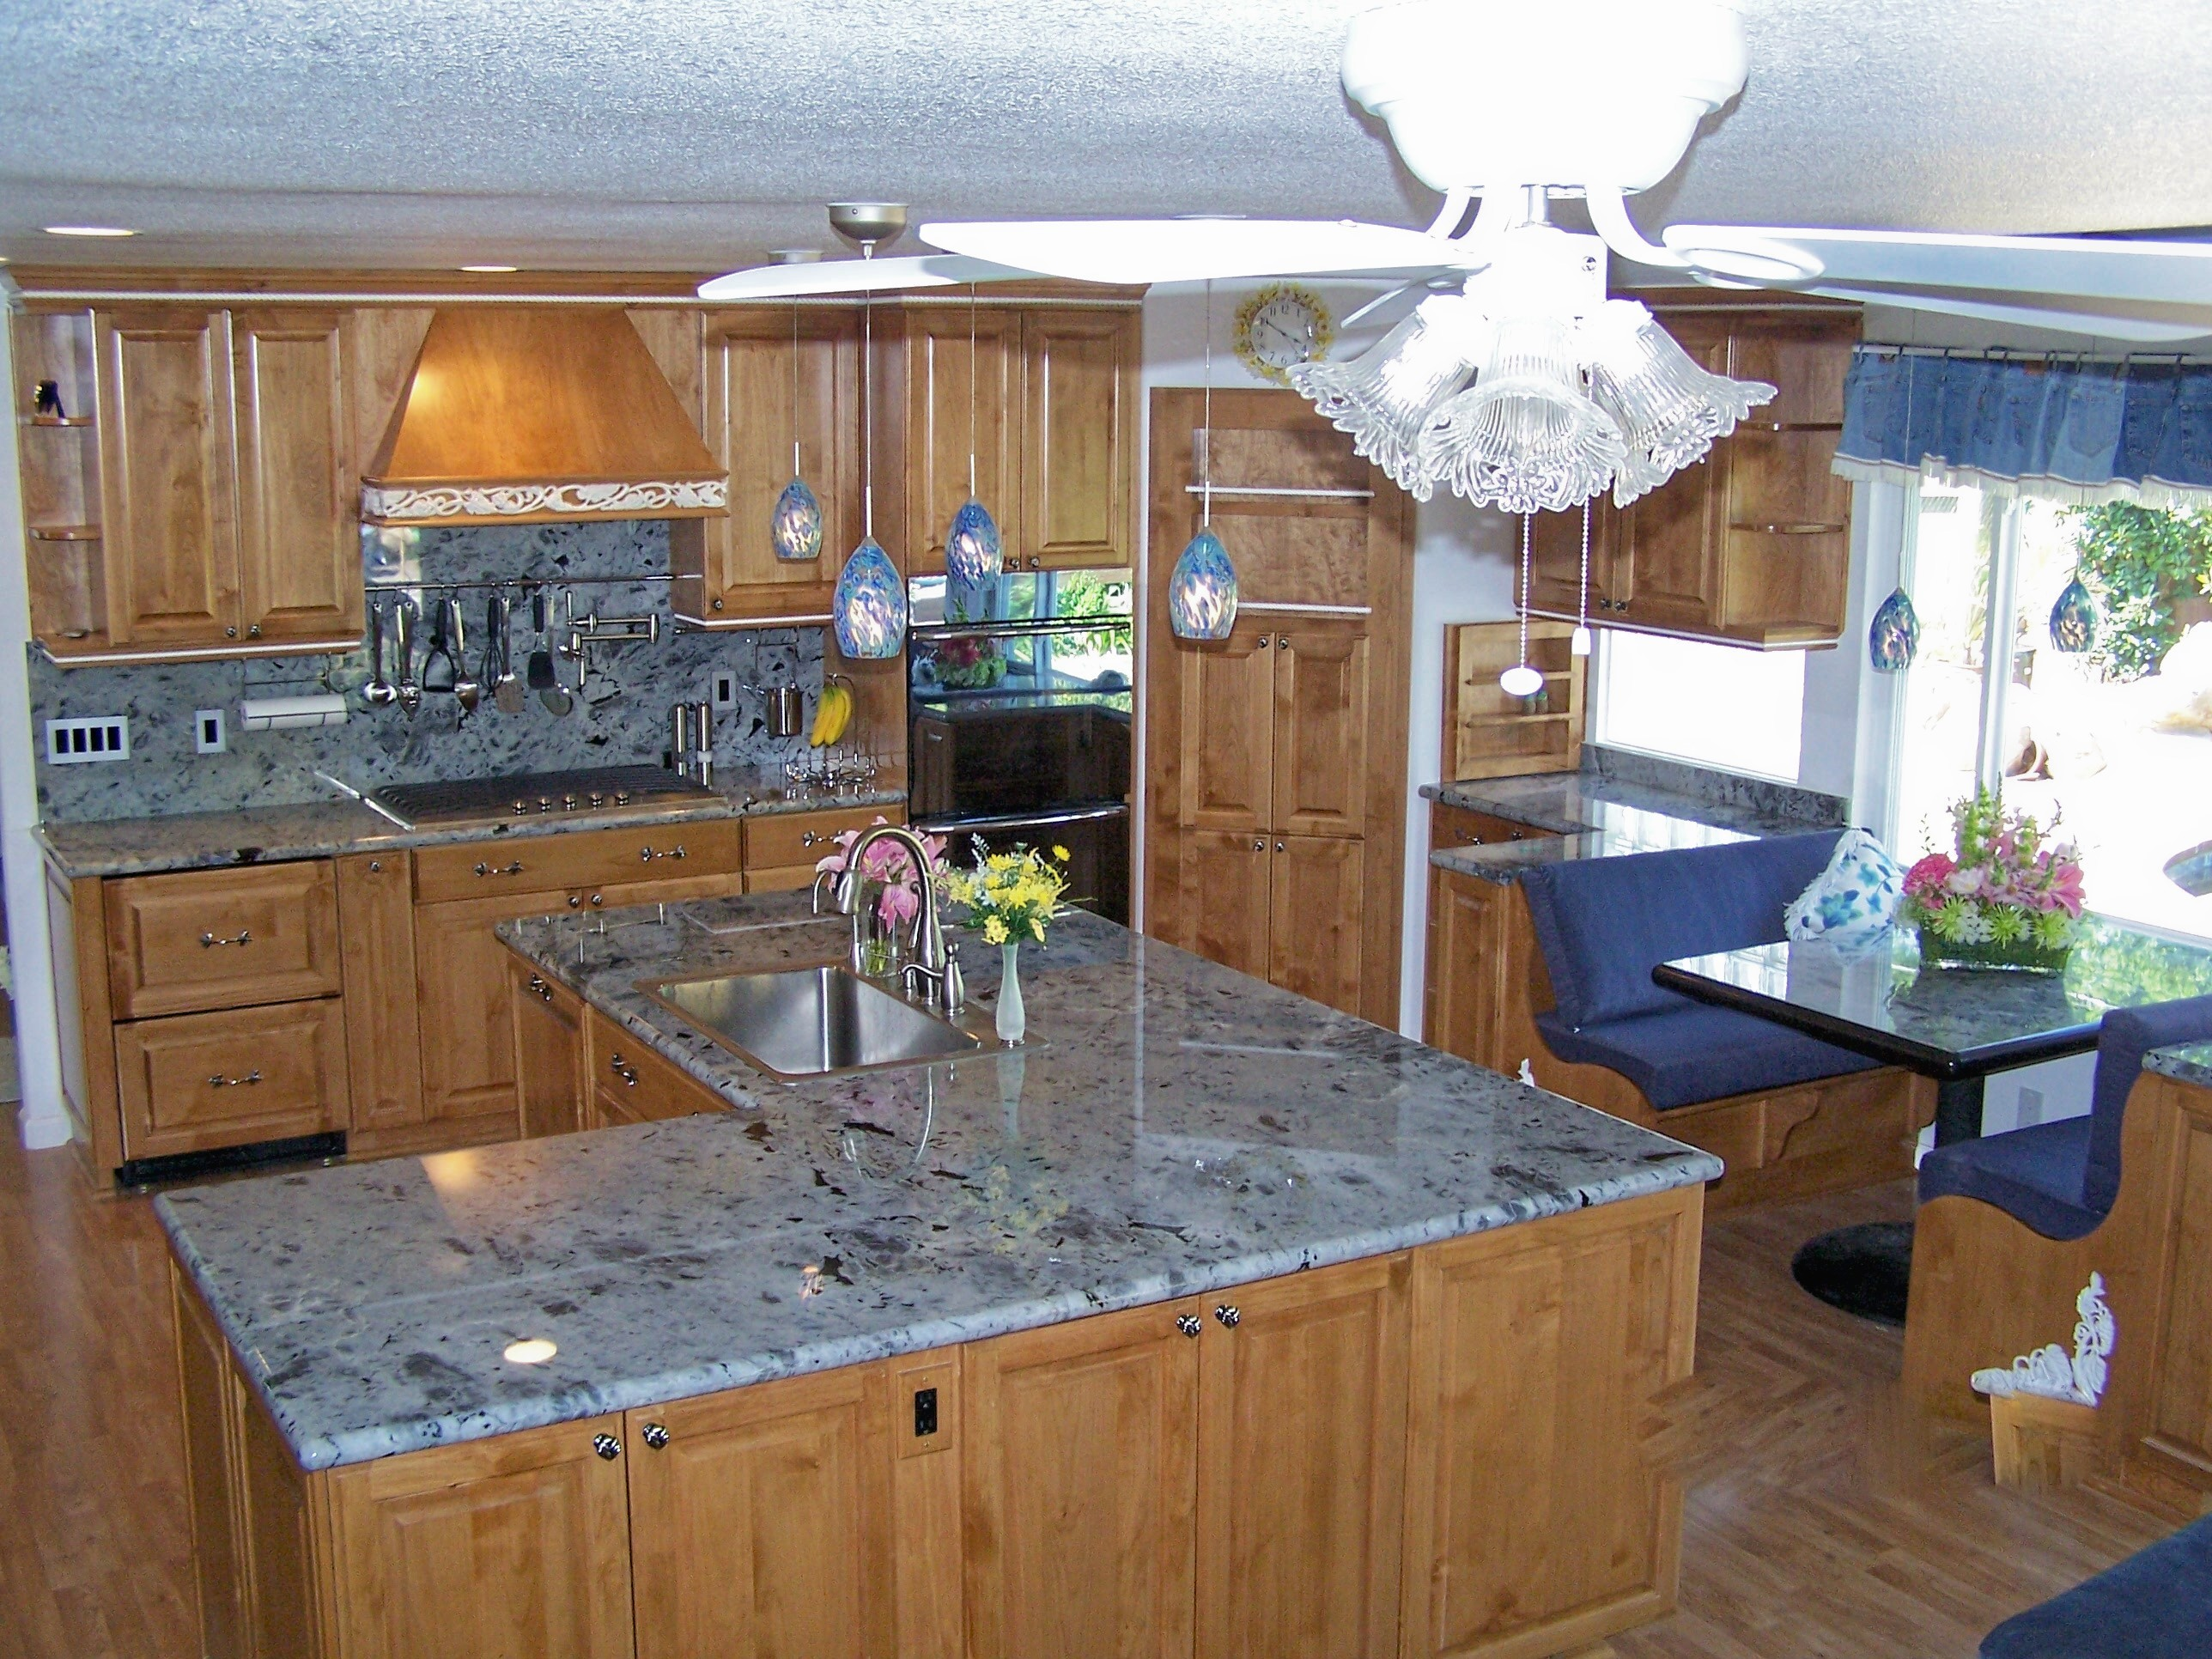 pros countertops quartz countertop expertise polishing best we looked granite miami the picked top at serving and fl